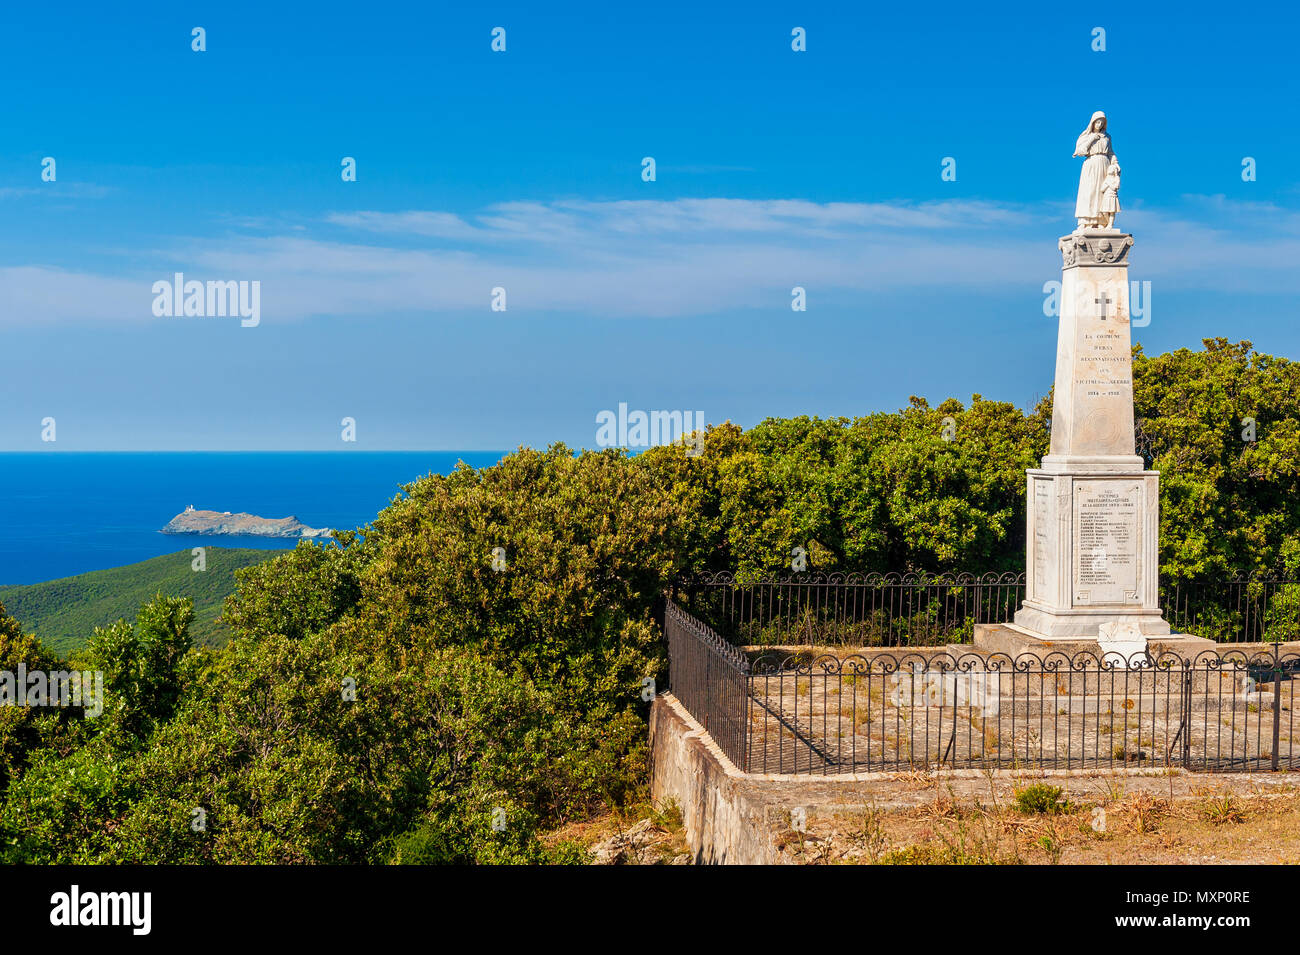 World War I and II Memorial Statue and Plaque in Ersa Corsica France - Stock Image